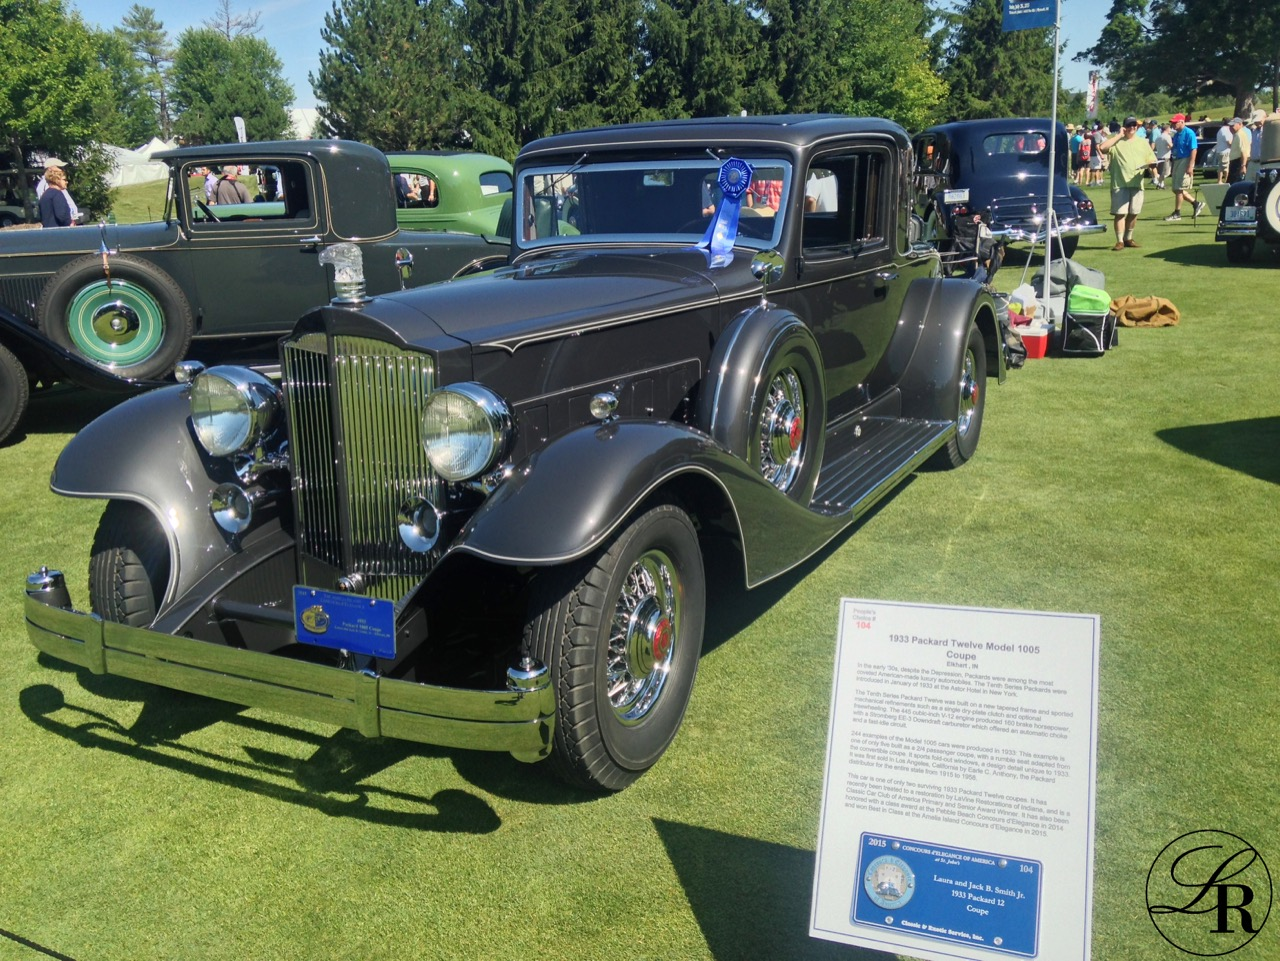 This LaVine Restorations restored 1933 Packard Model 1005 12 Cylinder Coupe took Best in Class in the American Classic Closed Class.